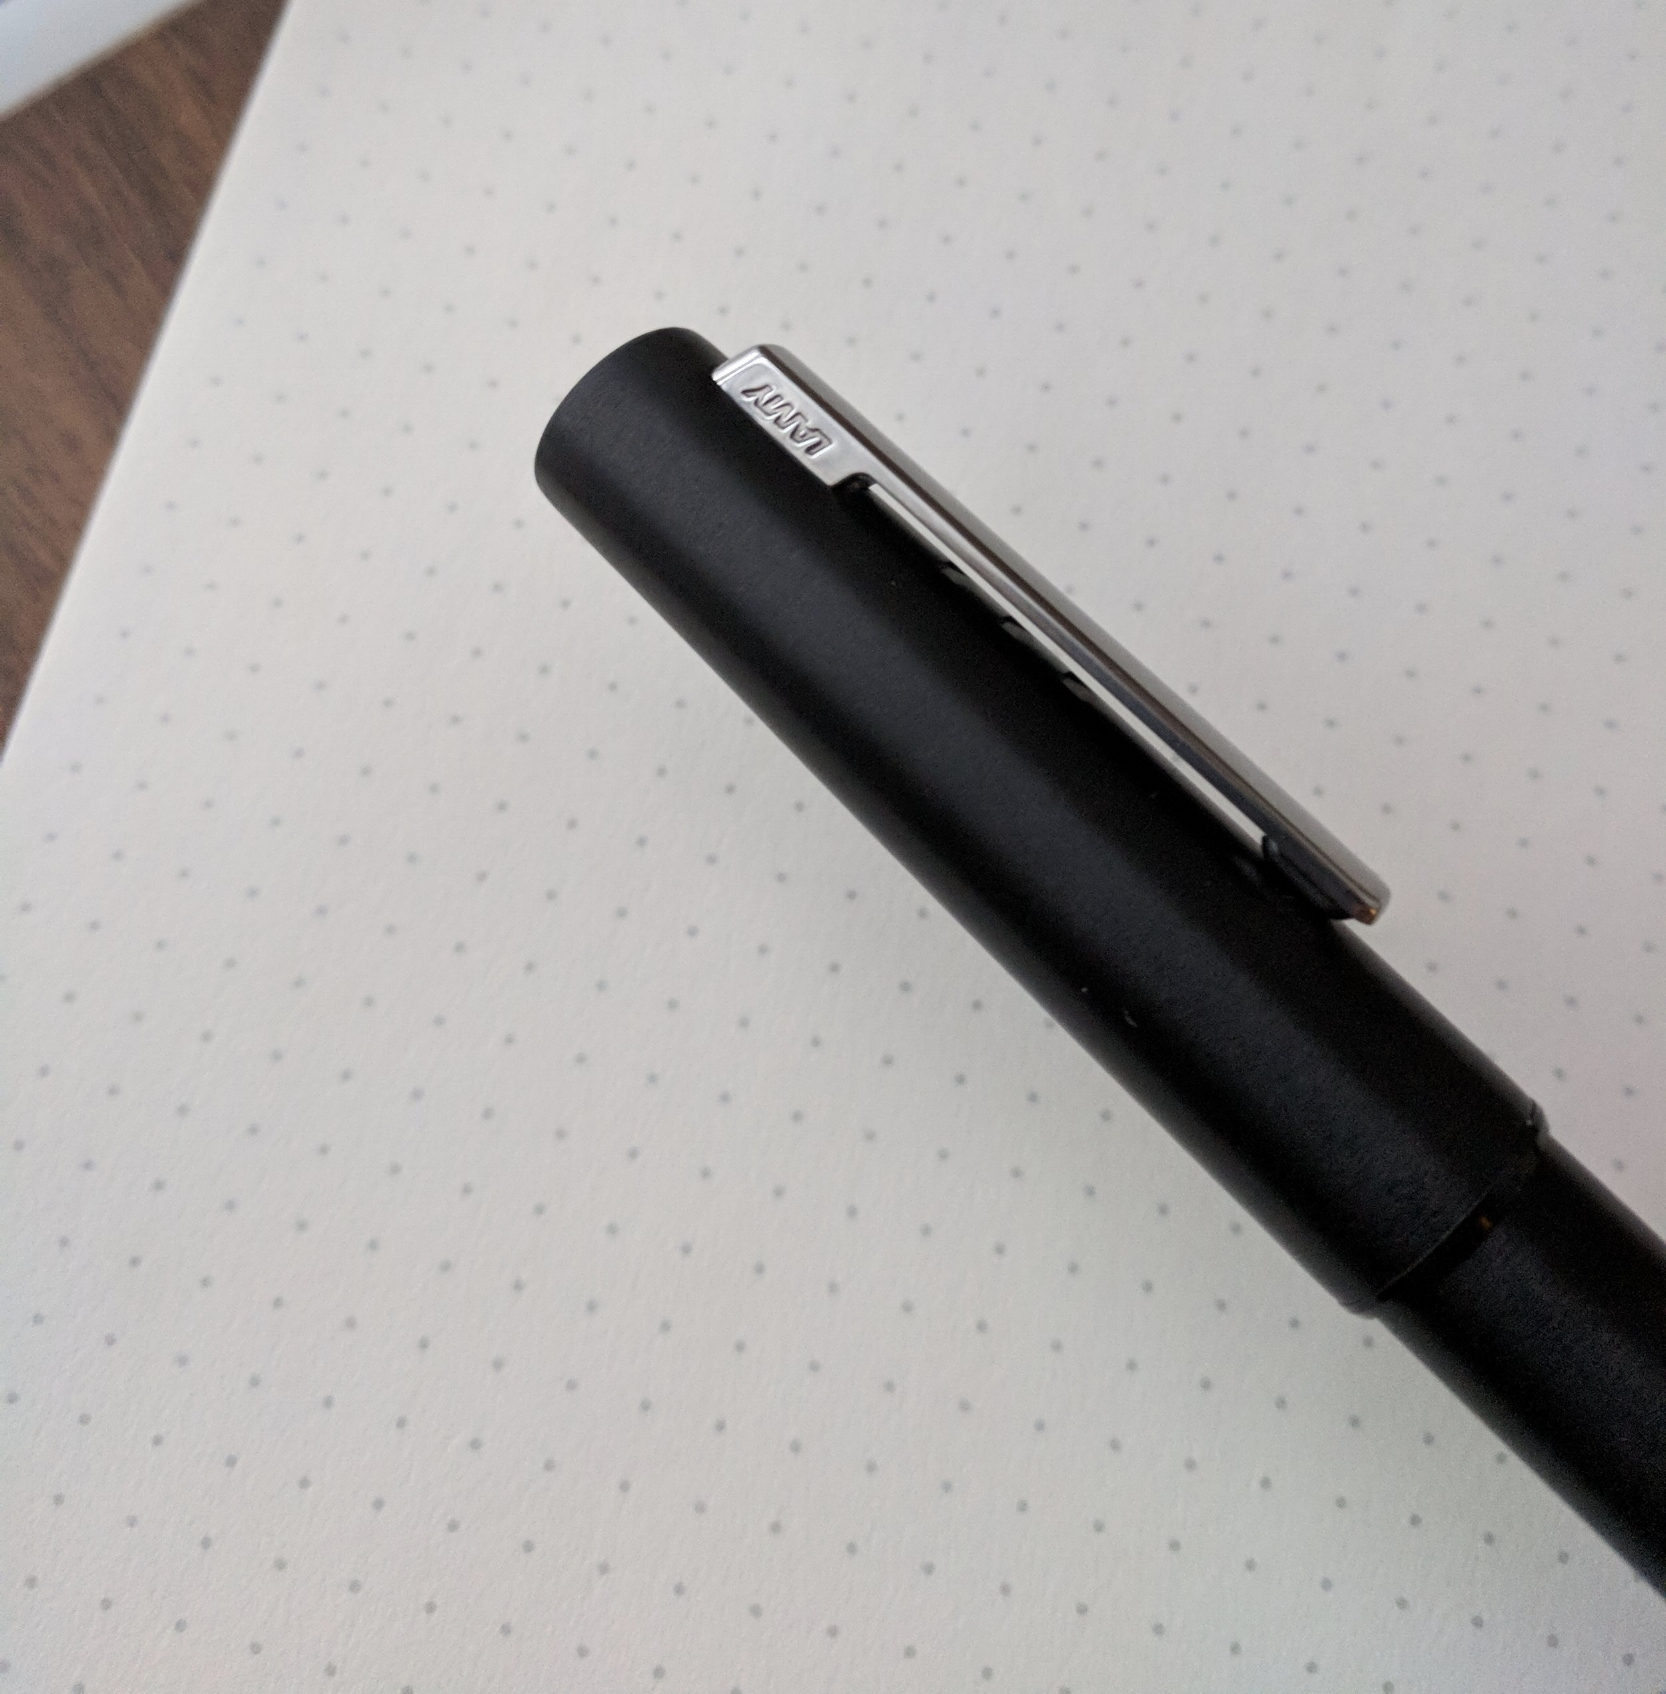 "The fact that ""Lamy"" is upside down on the clip sort of epitomizes the problems / odd design choices with this pen."